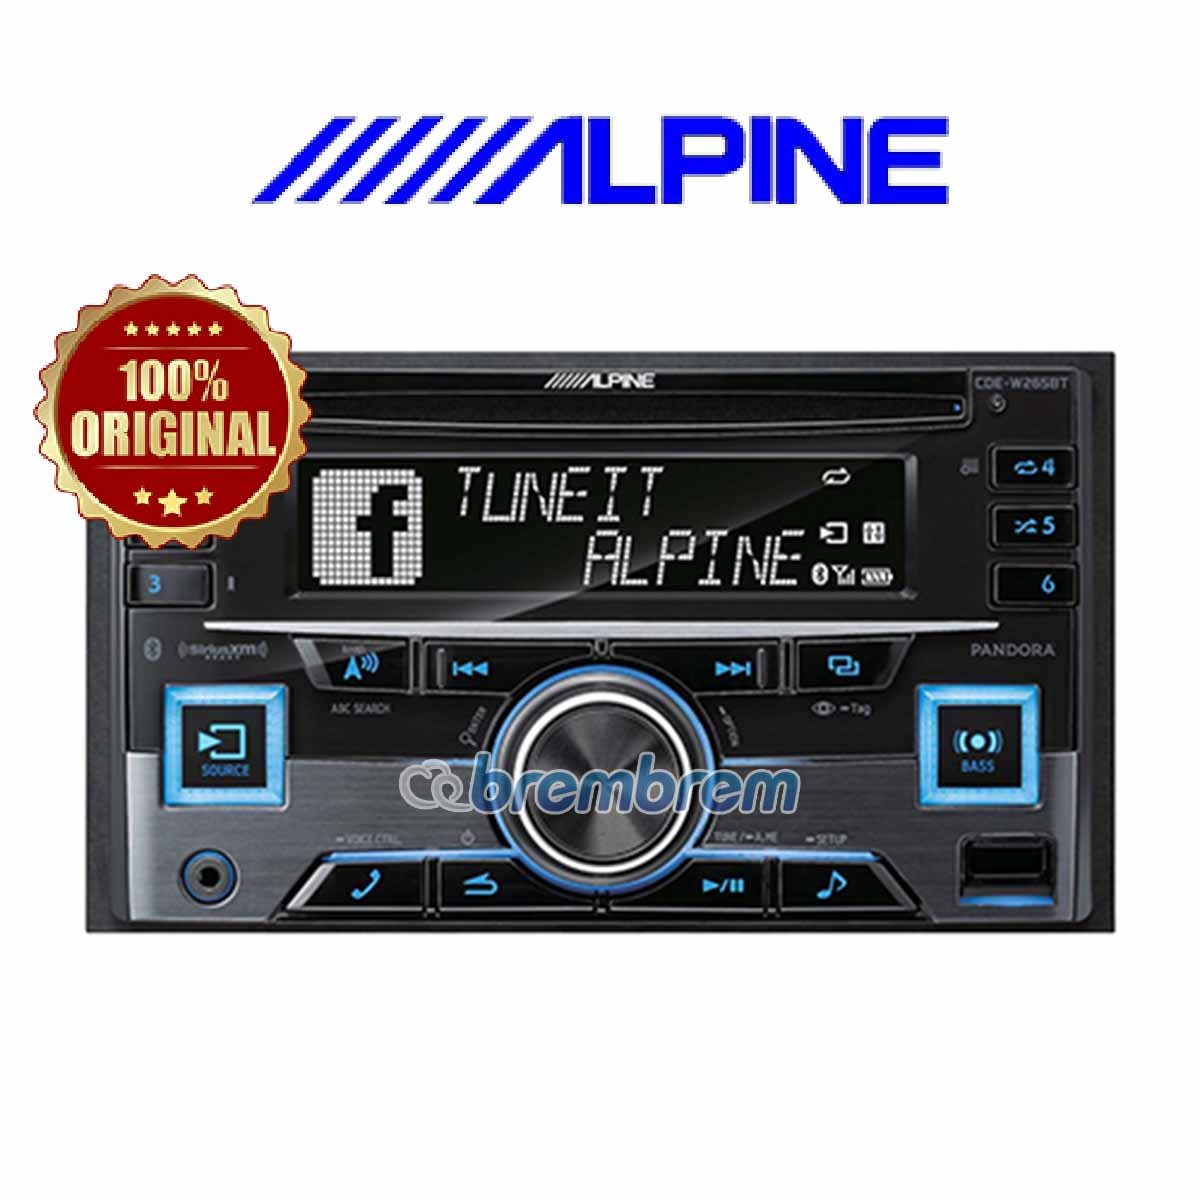 ALPINE CDE-W265EBT - HEADUNIT DOUBLE DIN